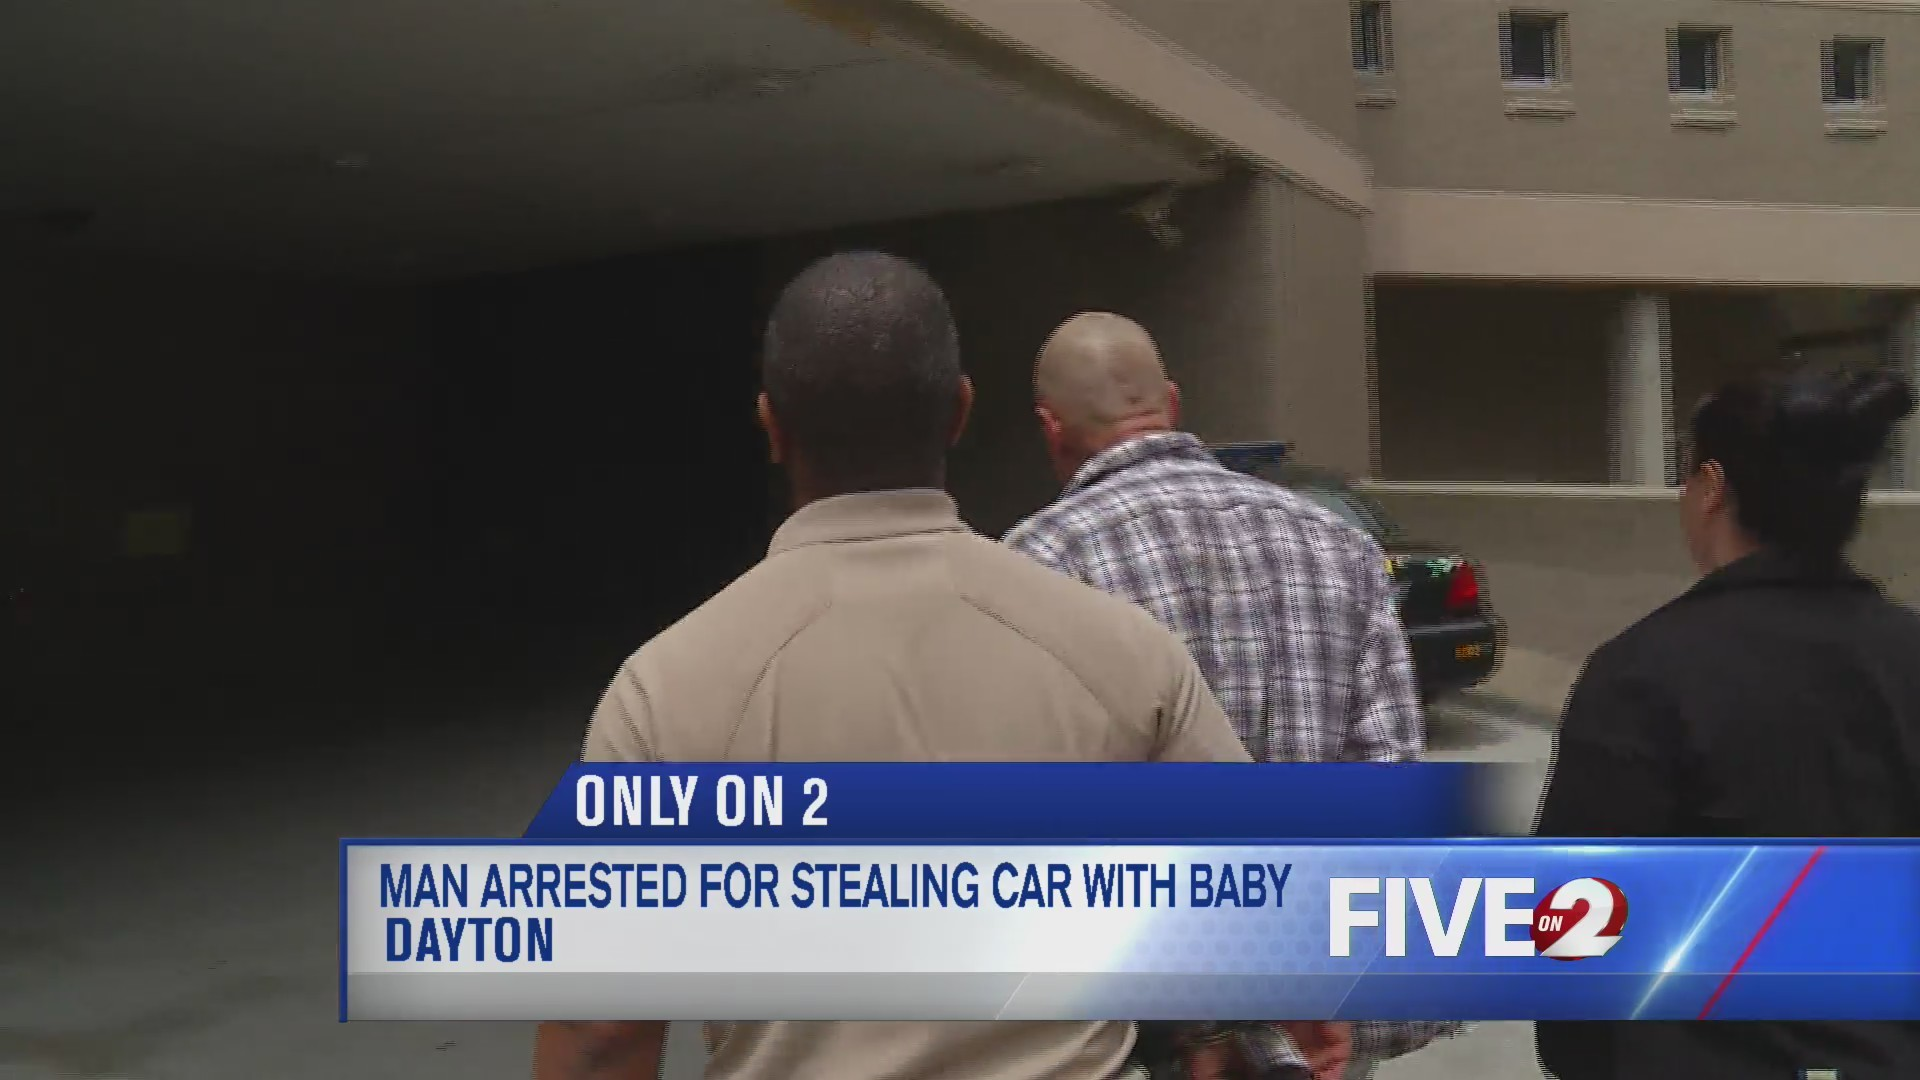 Man arrested for stealing car with baby